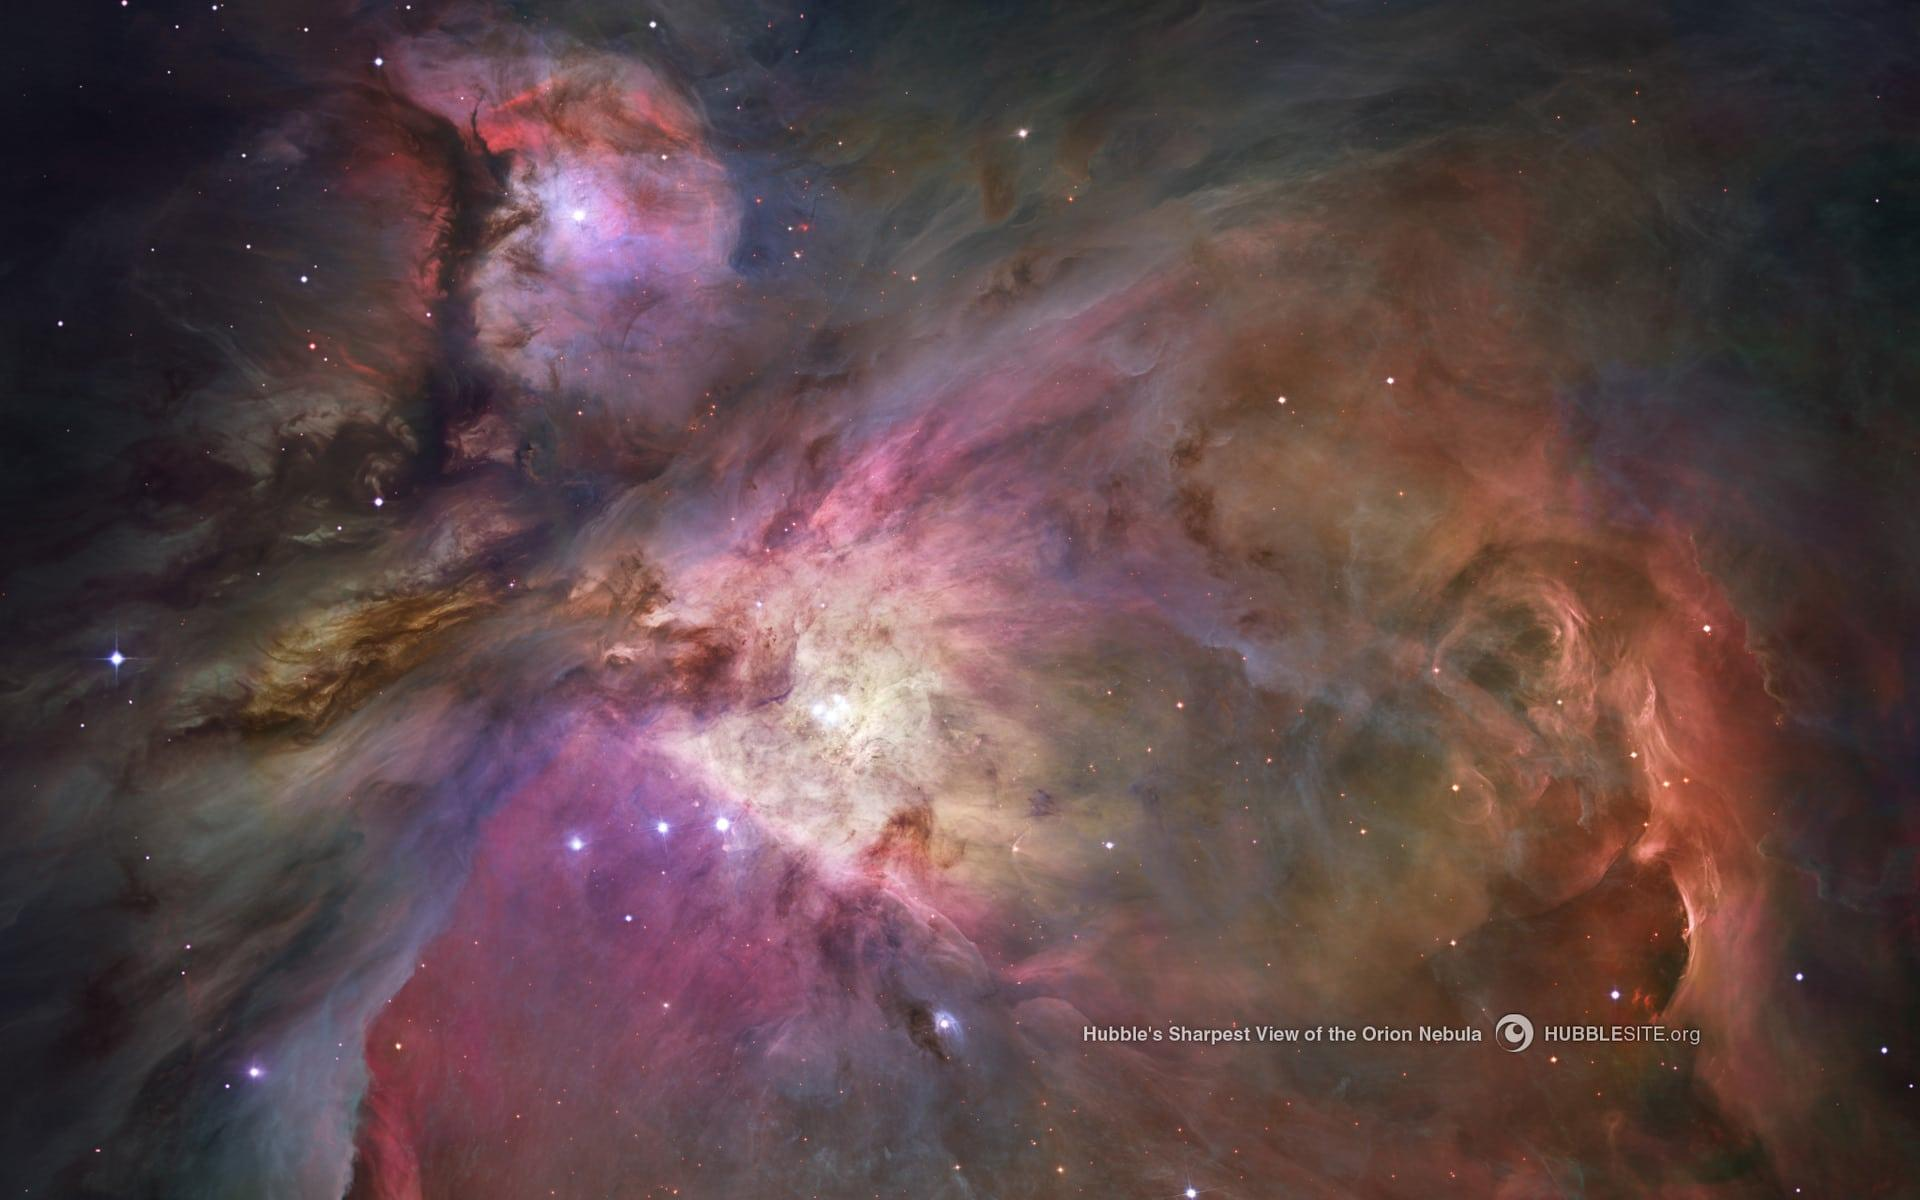 The Orion Nebula as seen by the Hubble Telescope